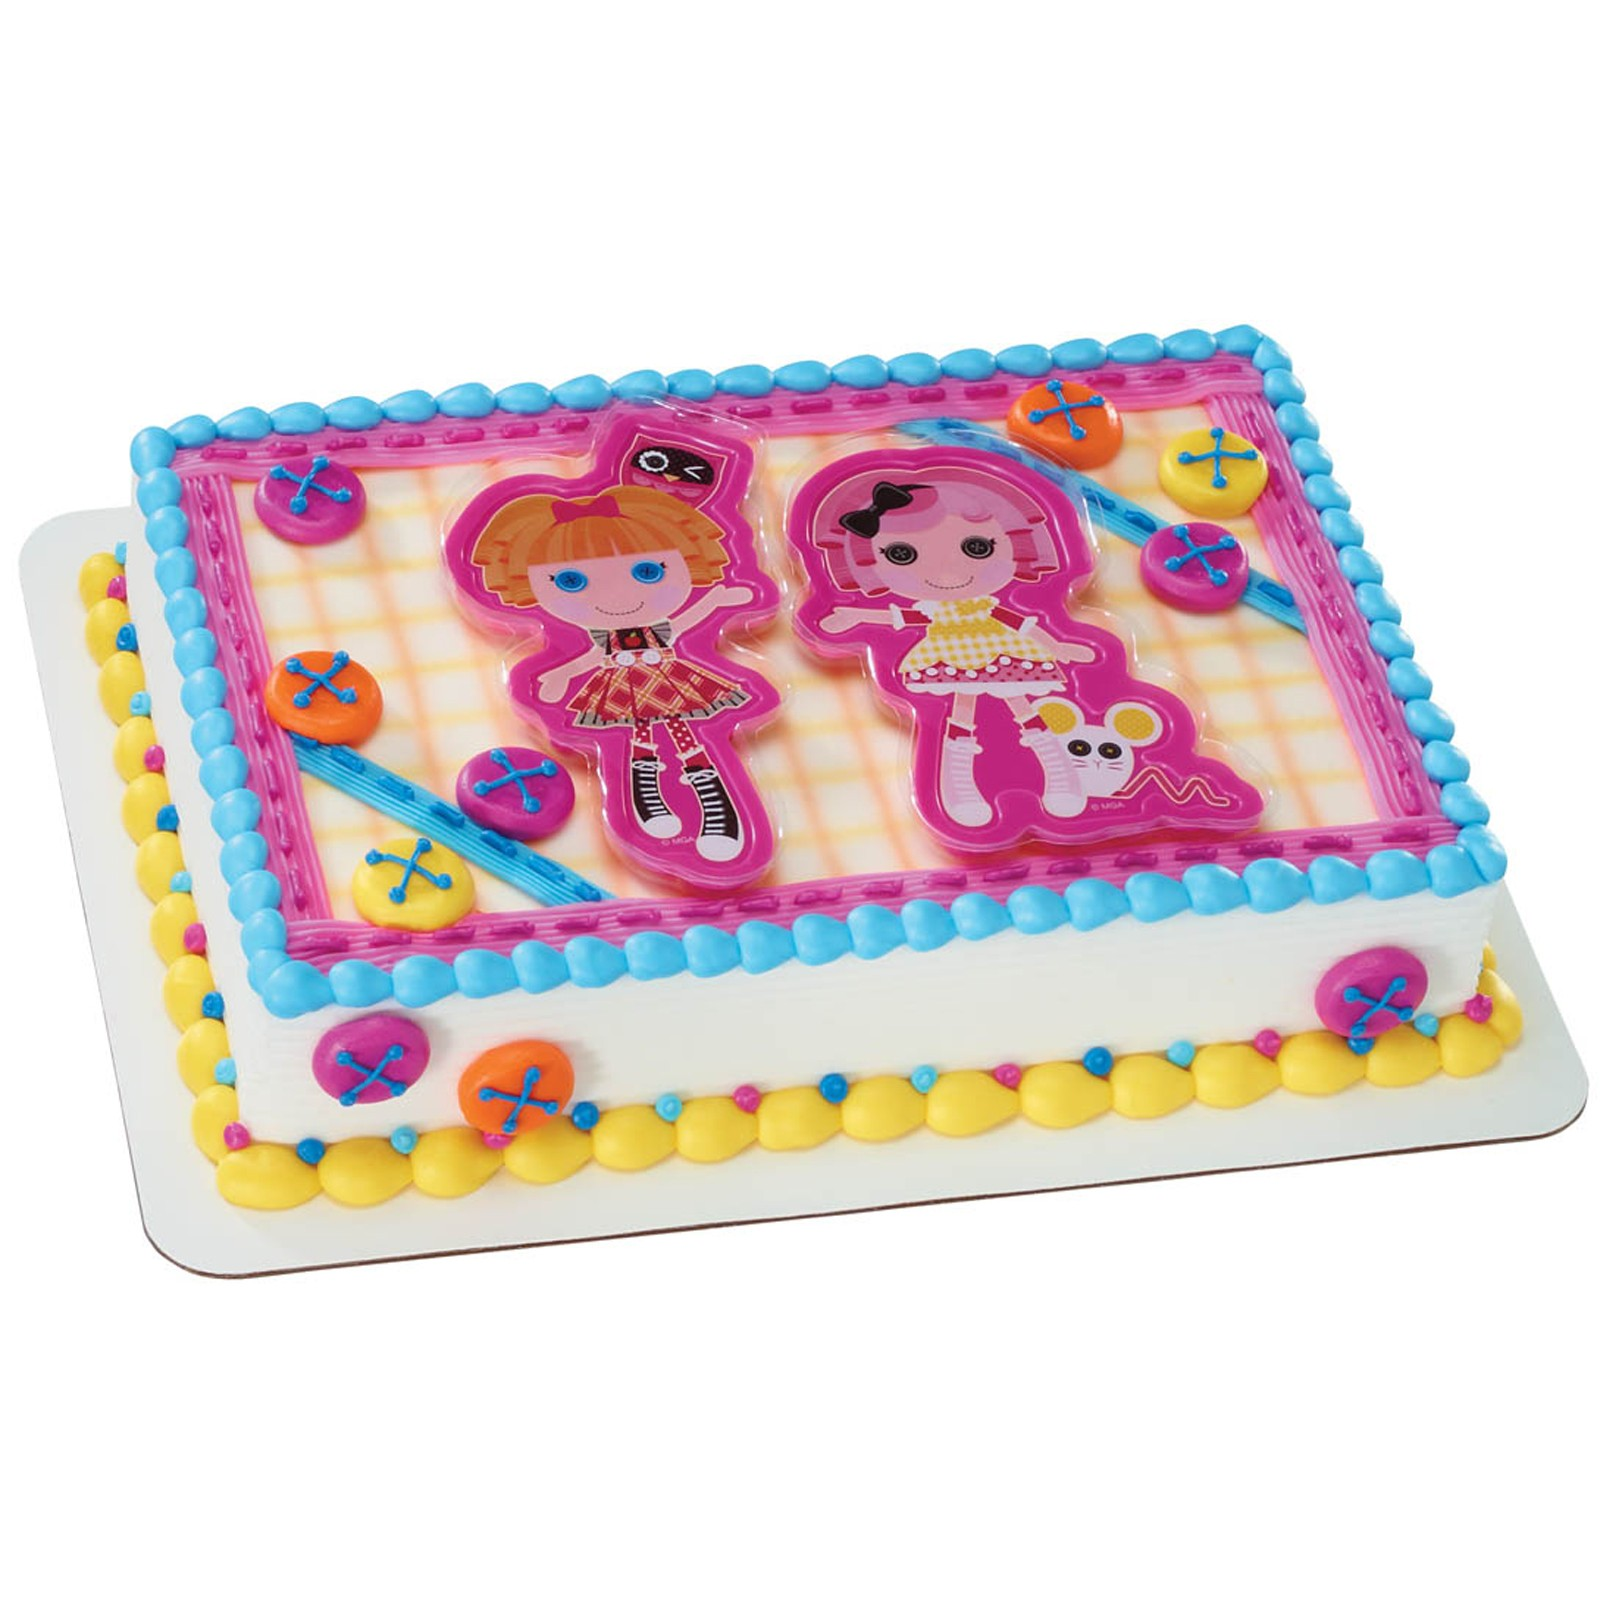 Lalaloopsy Cake Topper Or Cookie Cutter This Party Started